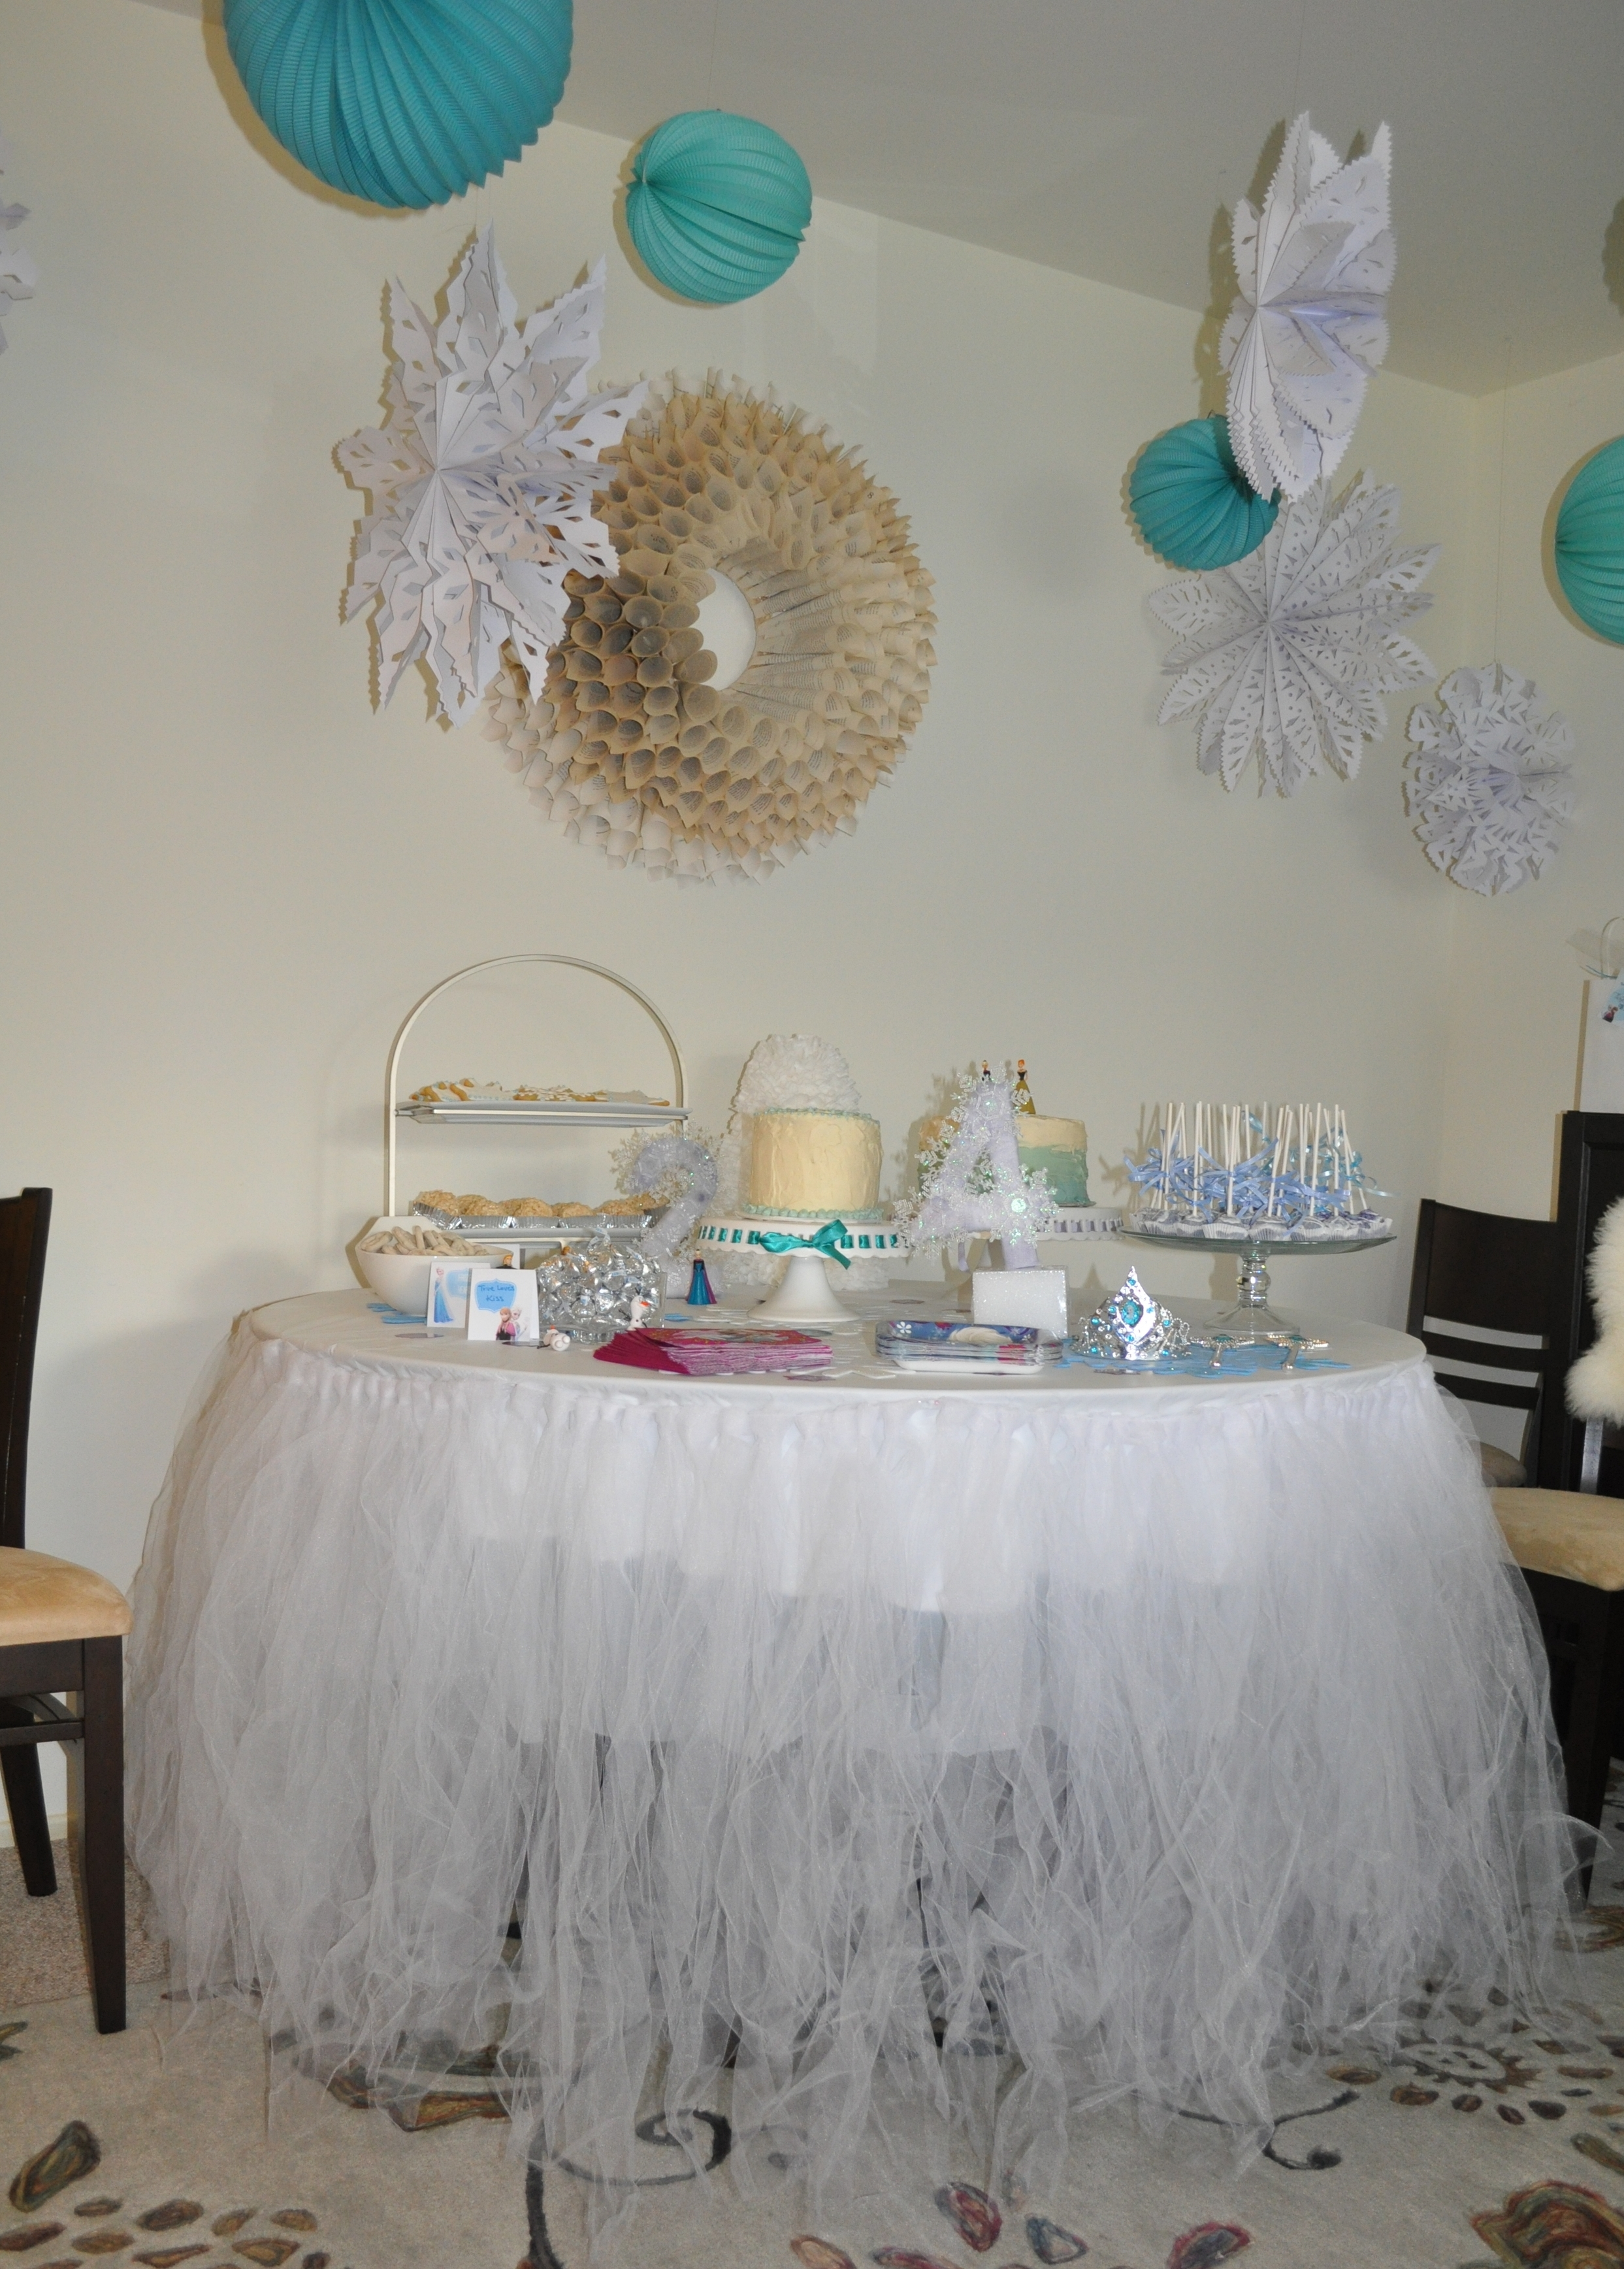 Hanging lanterns and snowflakes, plus a recycled table tutu from last year